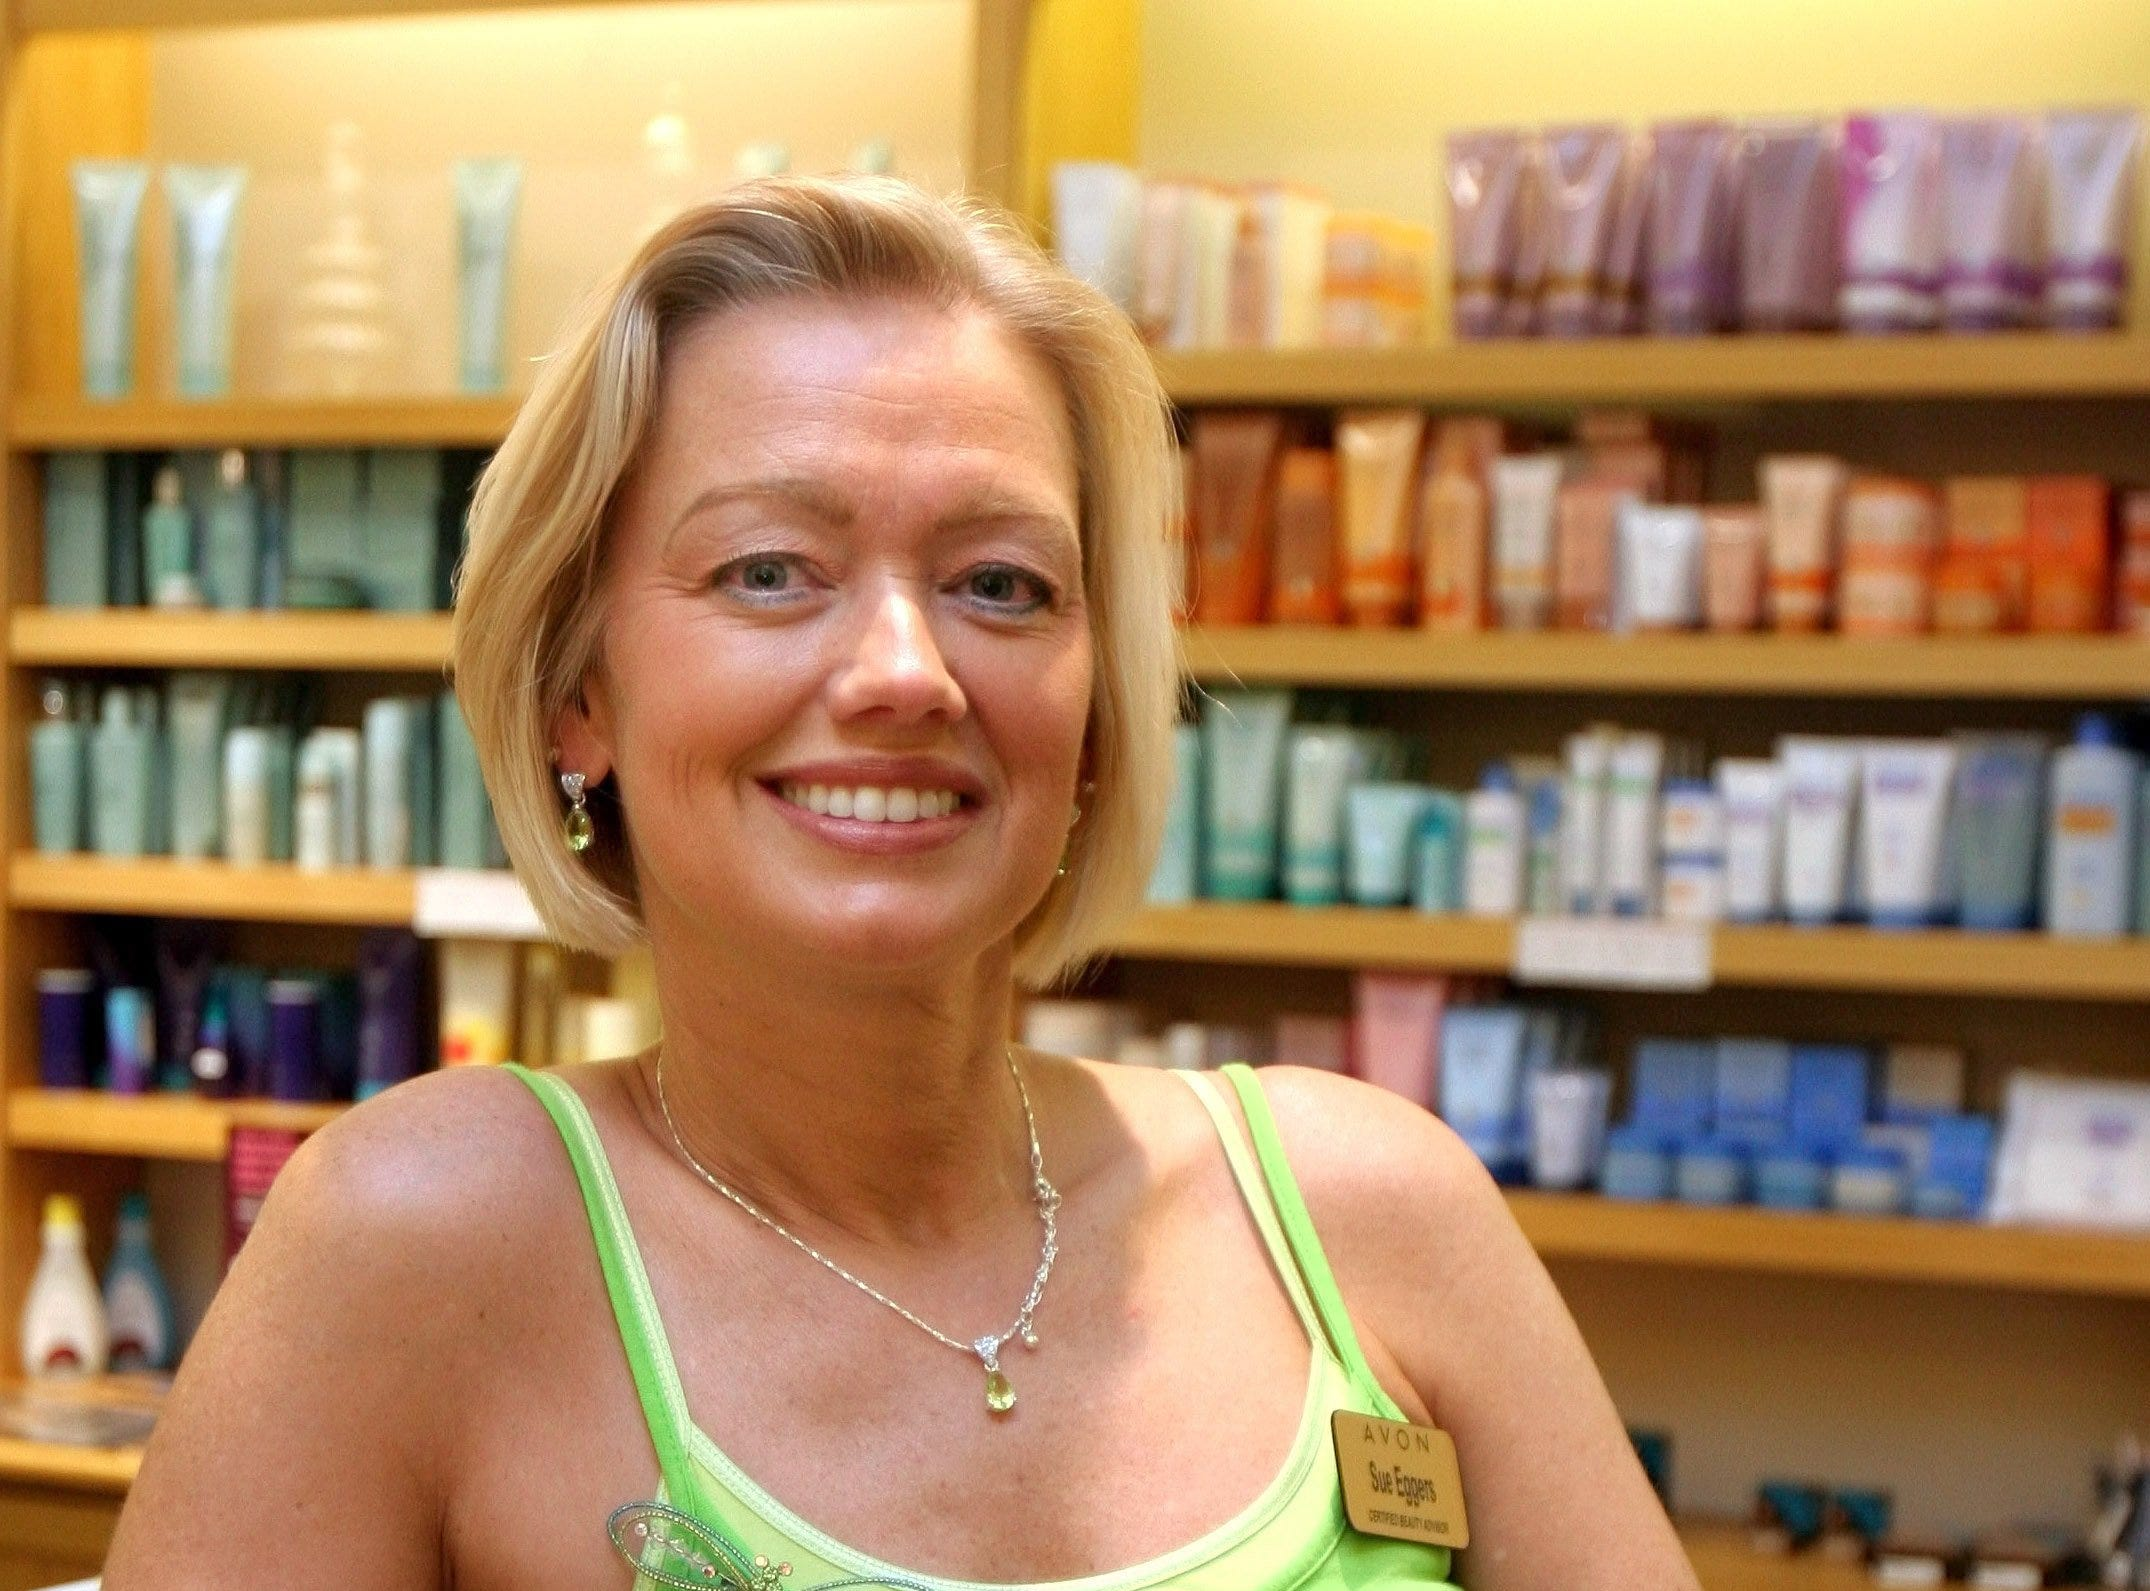 Sue Eggers, shown here in her Avon store at Valley West Mall, also operates a store at Jordan Creek Town Center. Eggers said she opened the stores for people who don't have an Avon representative or for someone who needs something quick on June 2, 2006.